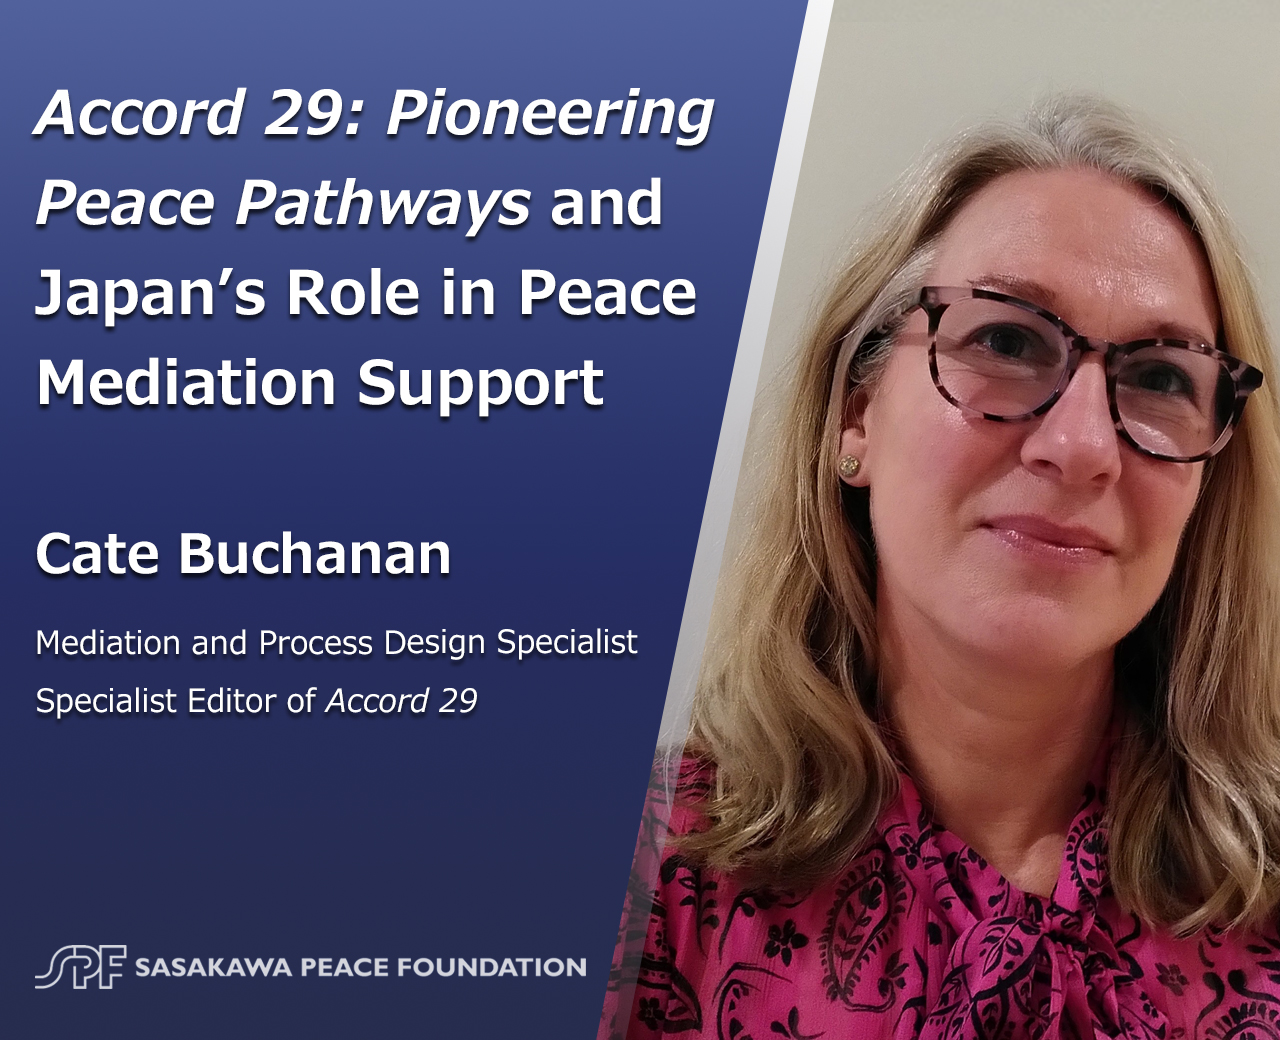 Accord 29: Pioneering Peace Pathways and Japan's Role in Peace Mediation Support